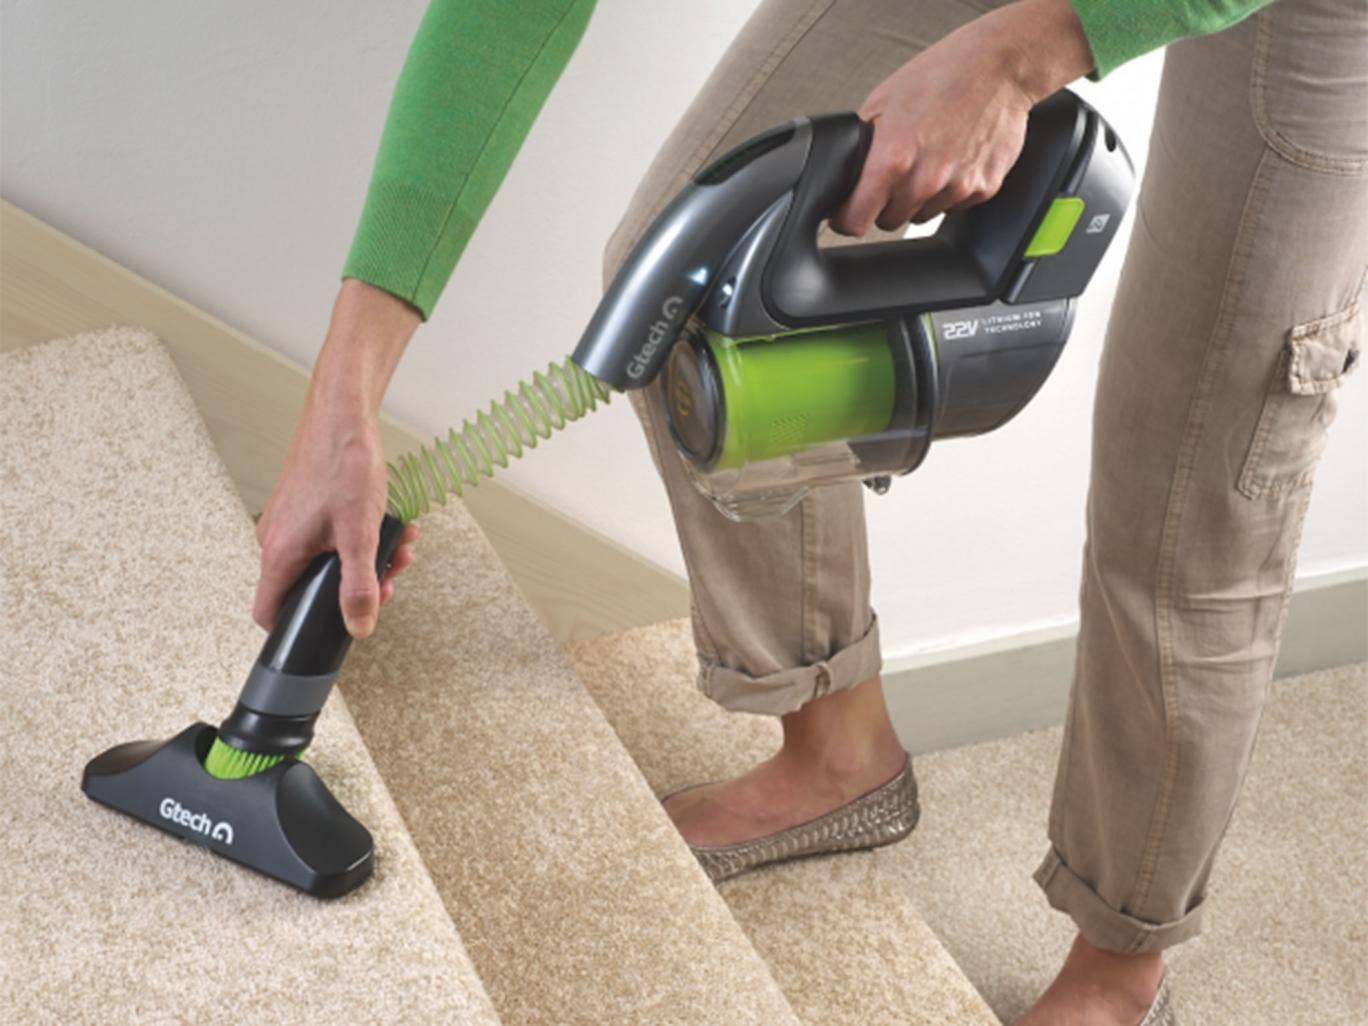 Choosing to buy the best vacuum cleaner